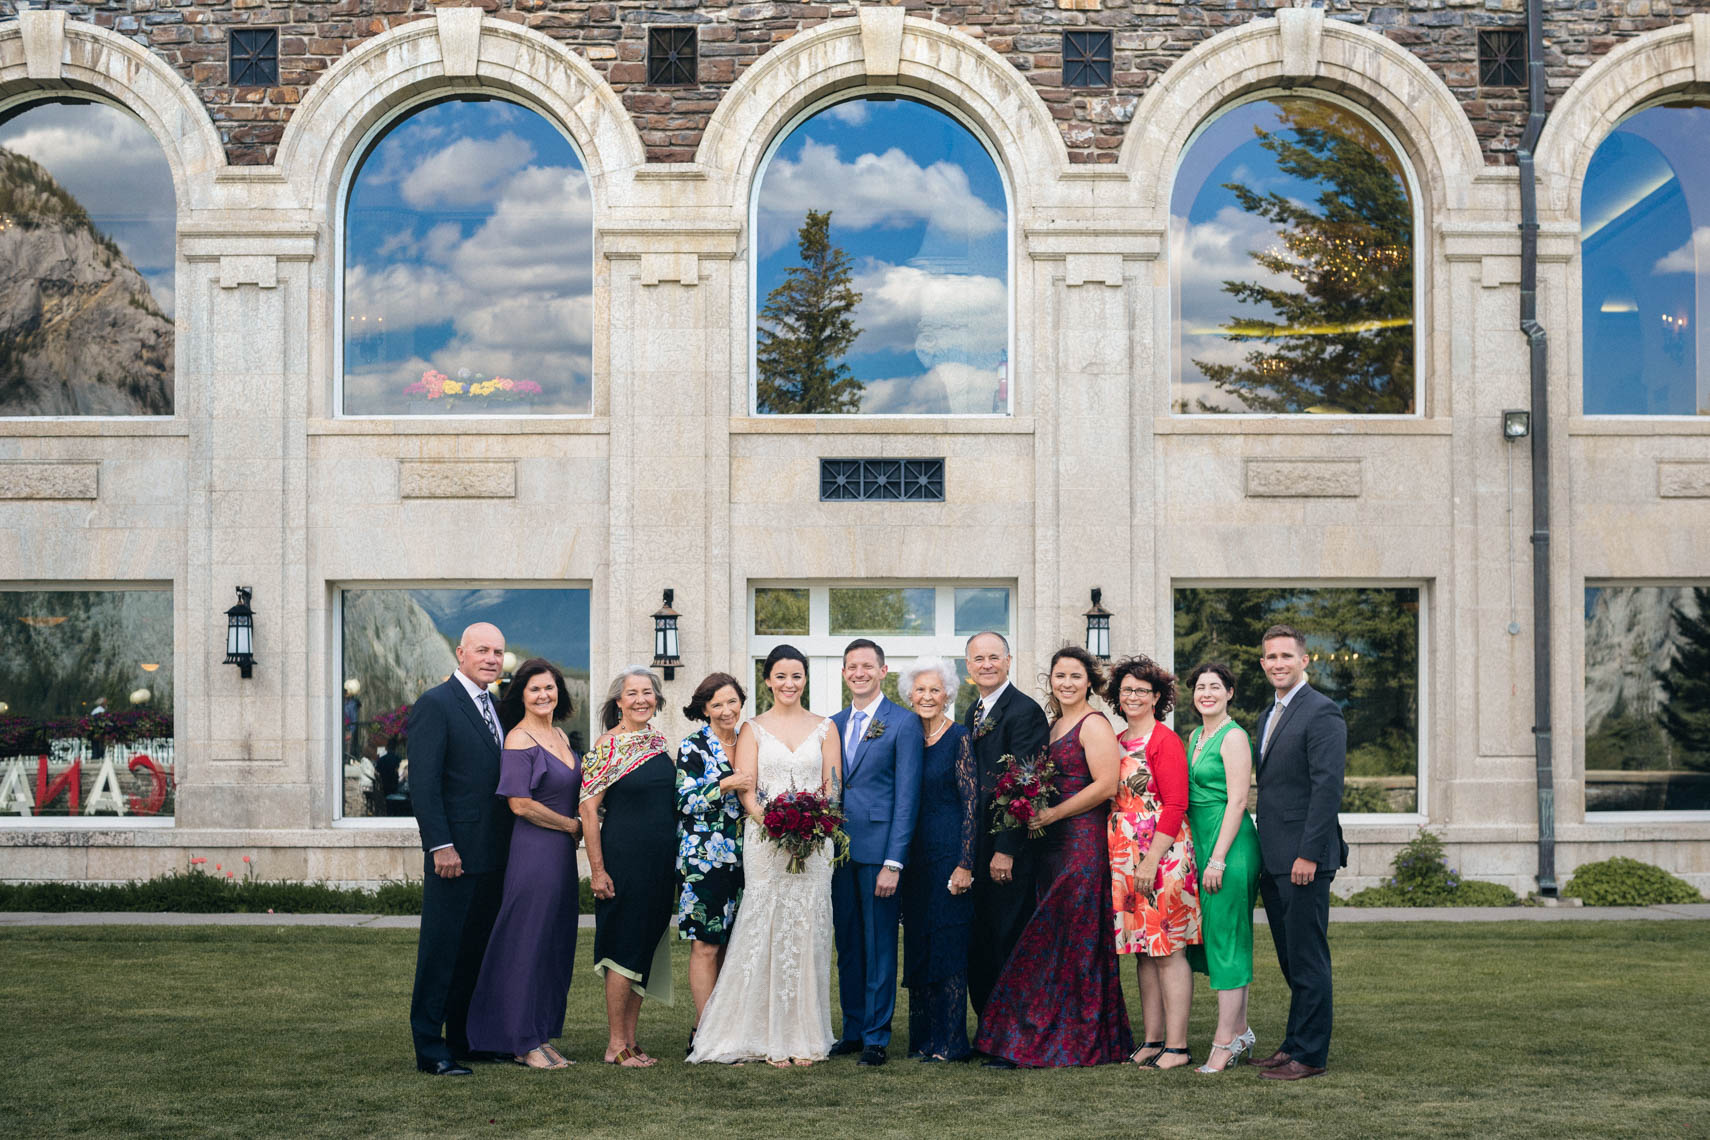 Group wedding family photo at Banff Springs Hotel in Alberta Canada